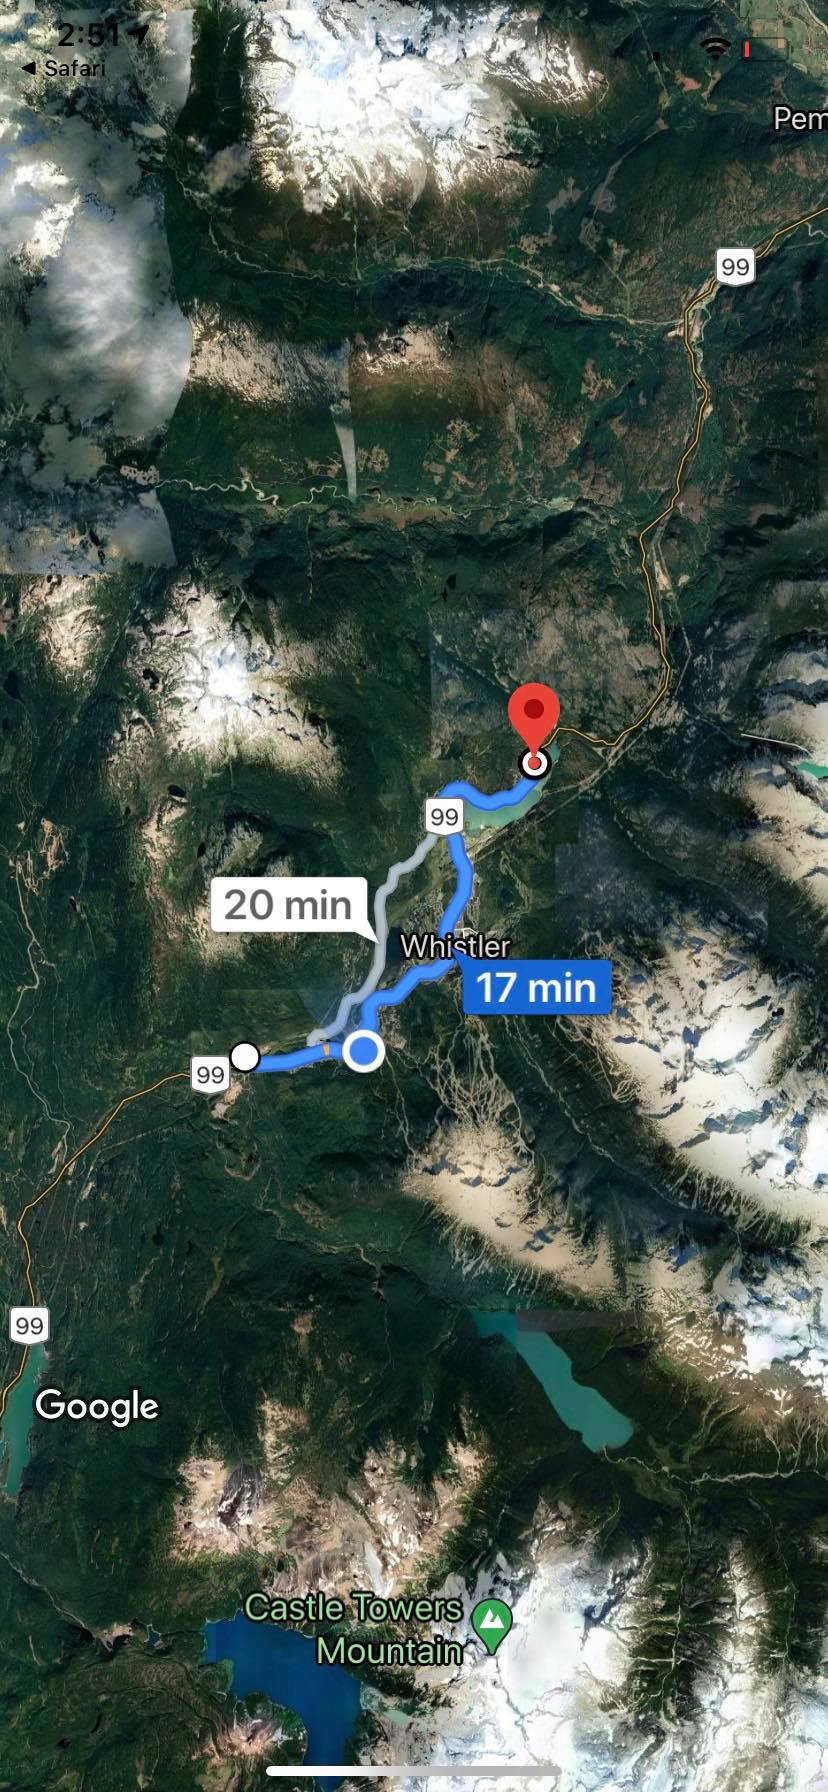 Google maps, Function to Emerald, 17 minutes along highway